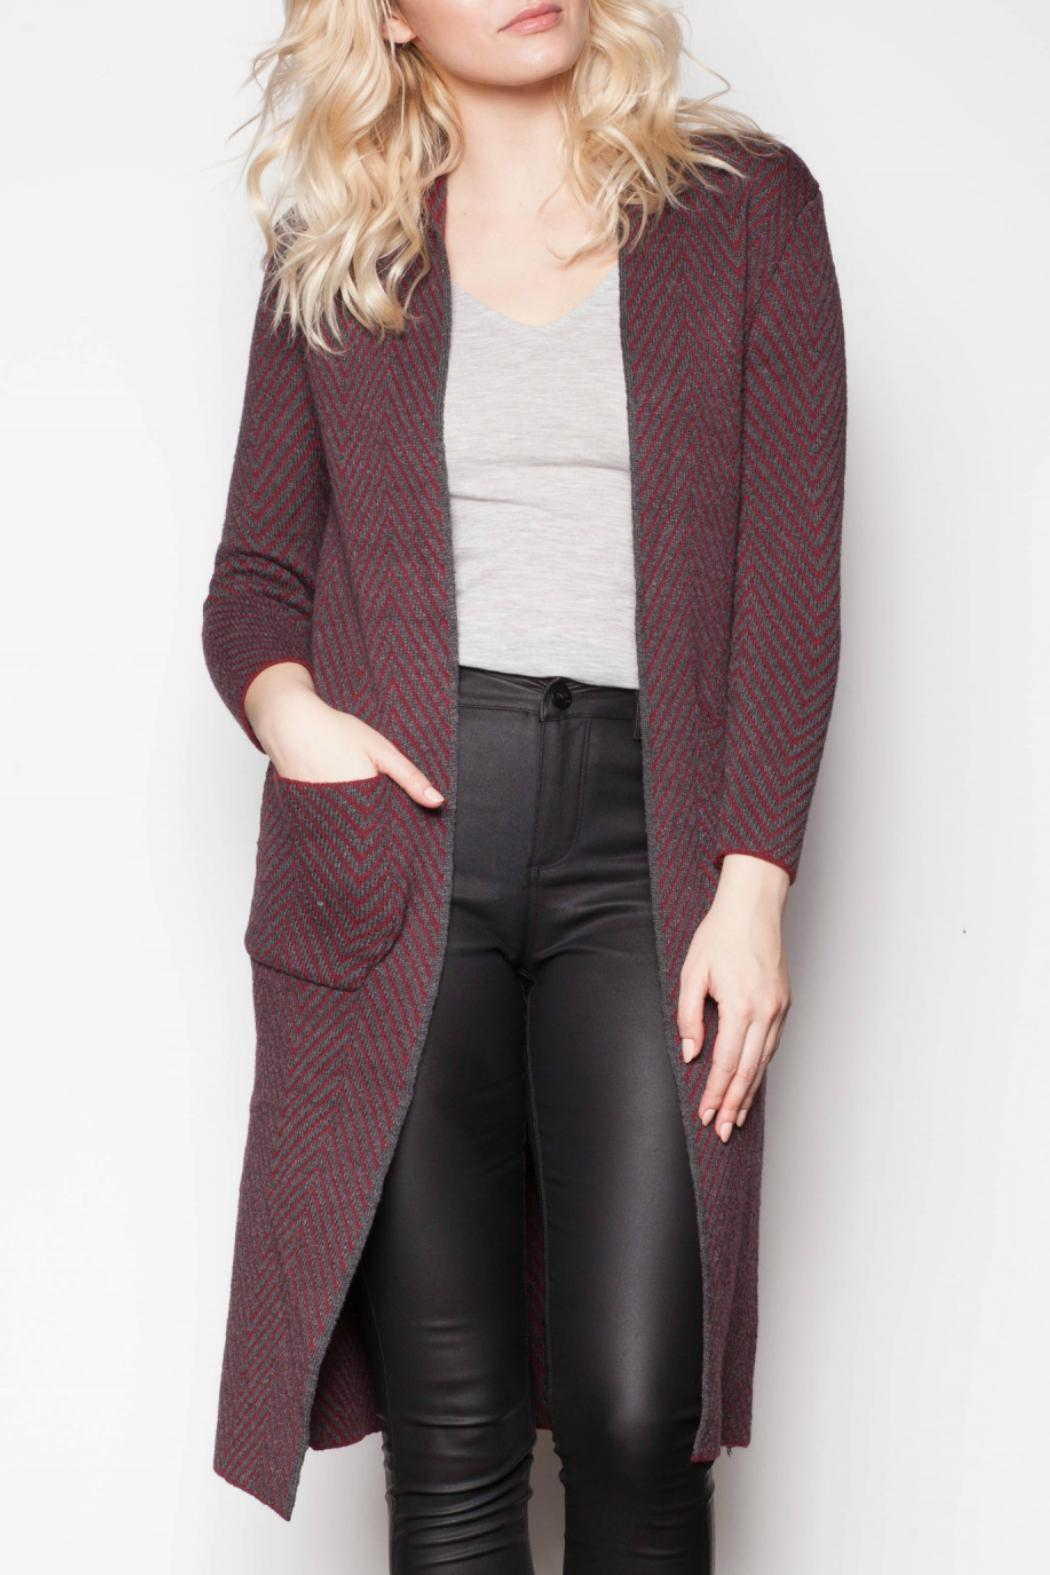 Pink Martini Chevron Duster Cardigan from Ohio by e.j. hannah ...